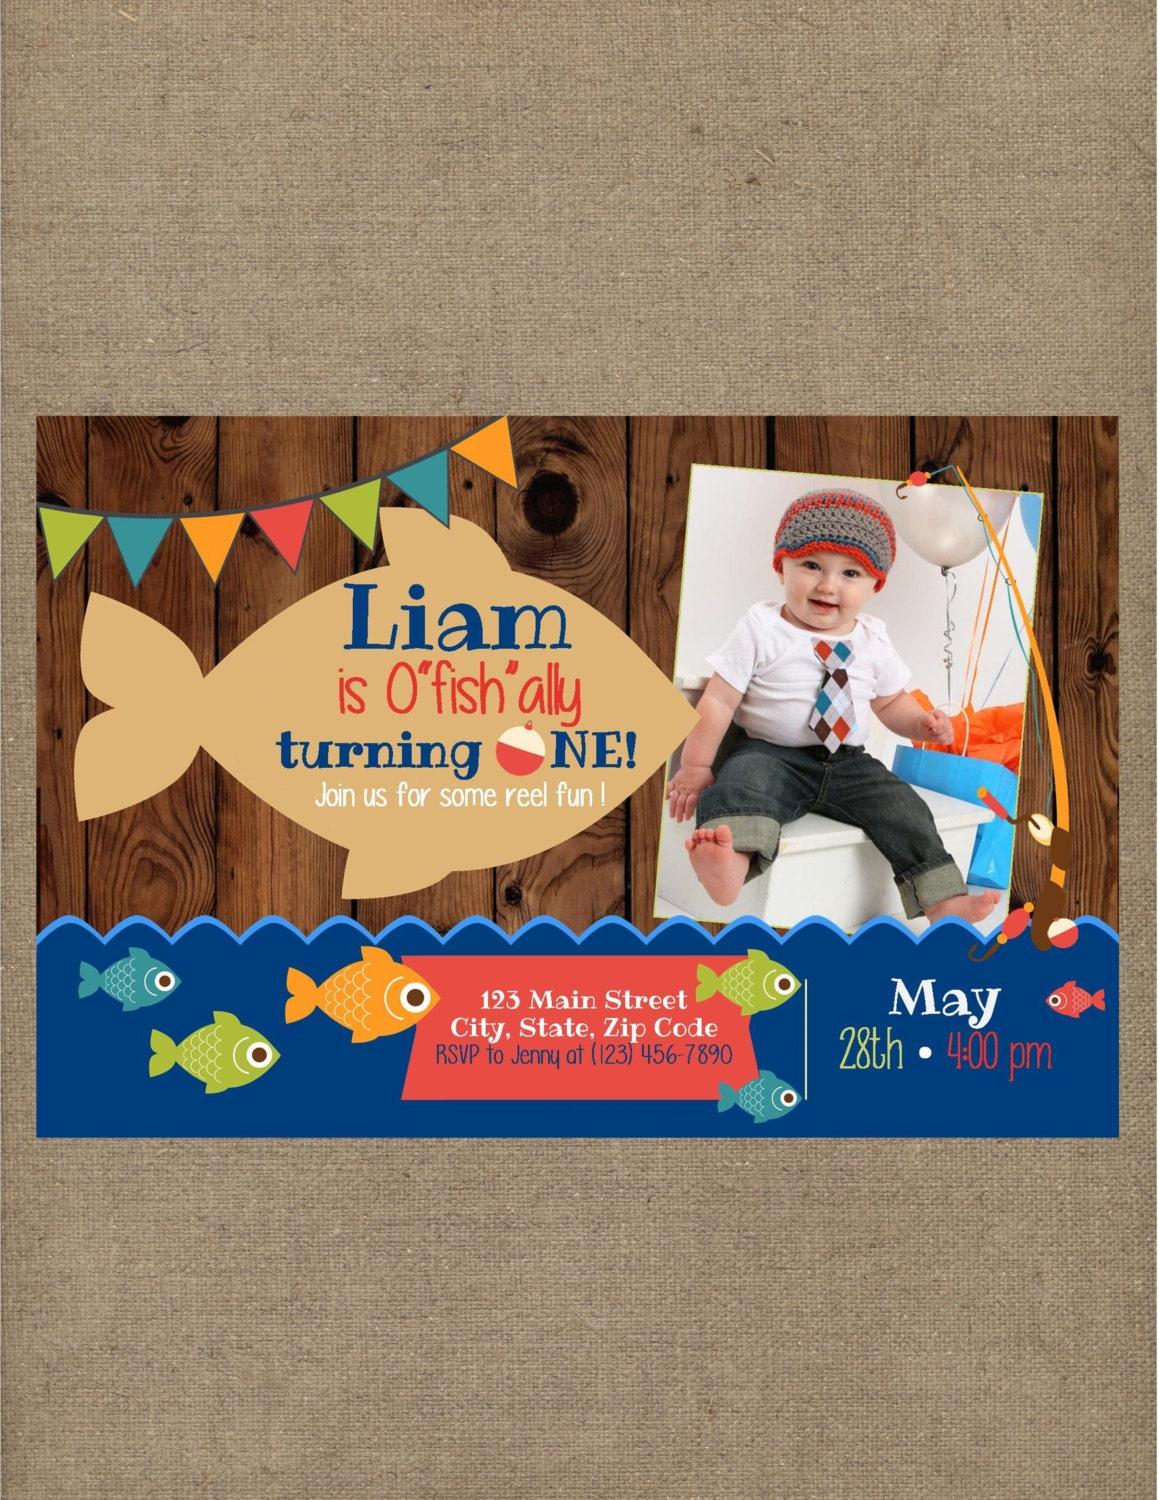 Fish Fishing Ofishally One Birthday Invitation Big One Gone – The Big One Birthday Invitation